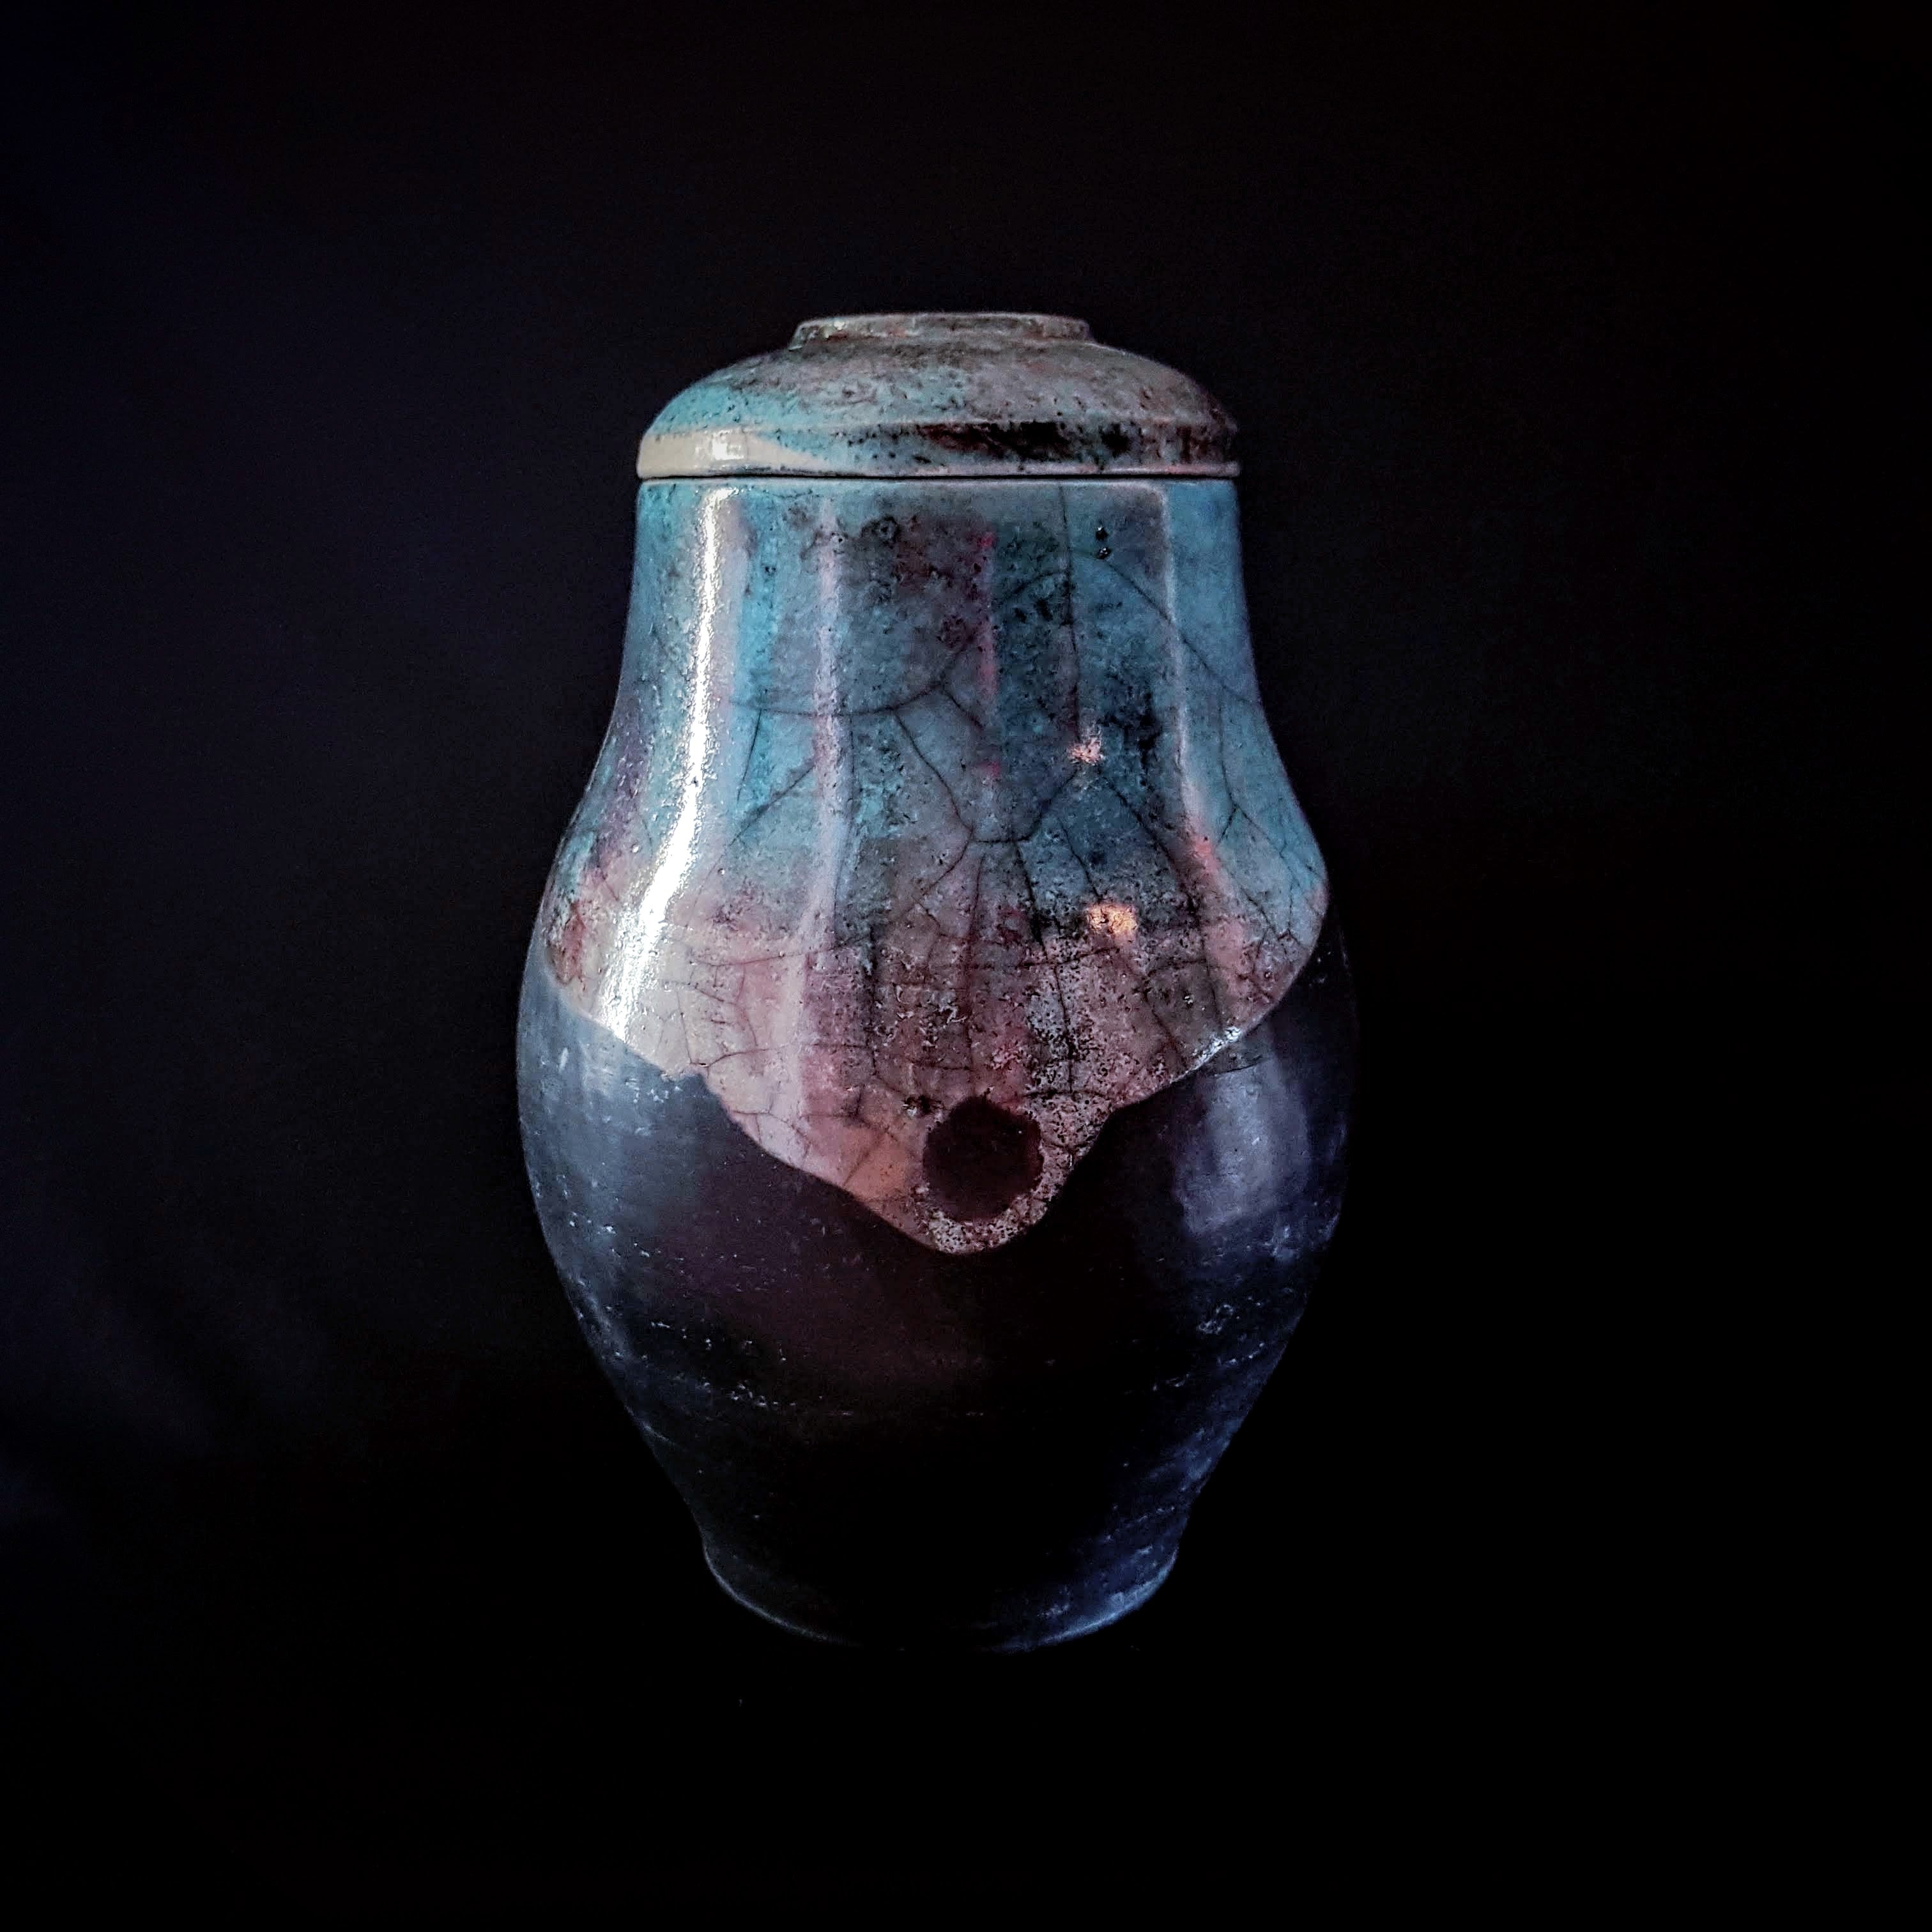 Shine black Cremation Urn, Hand Crafted unique Urn by Naiim pottery.